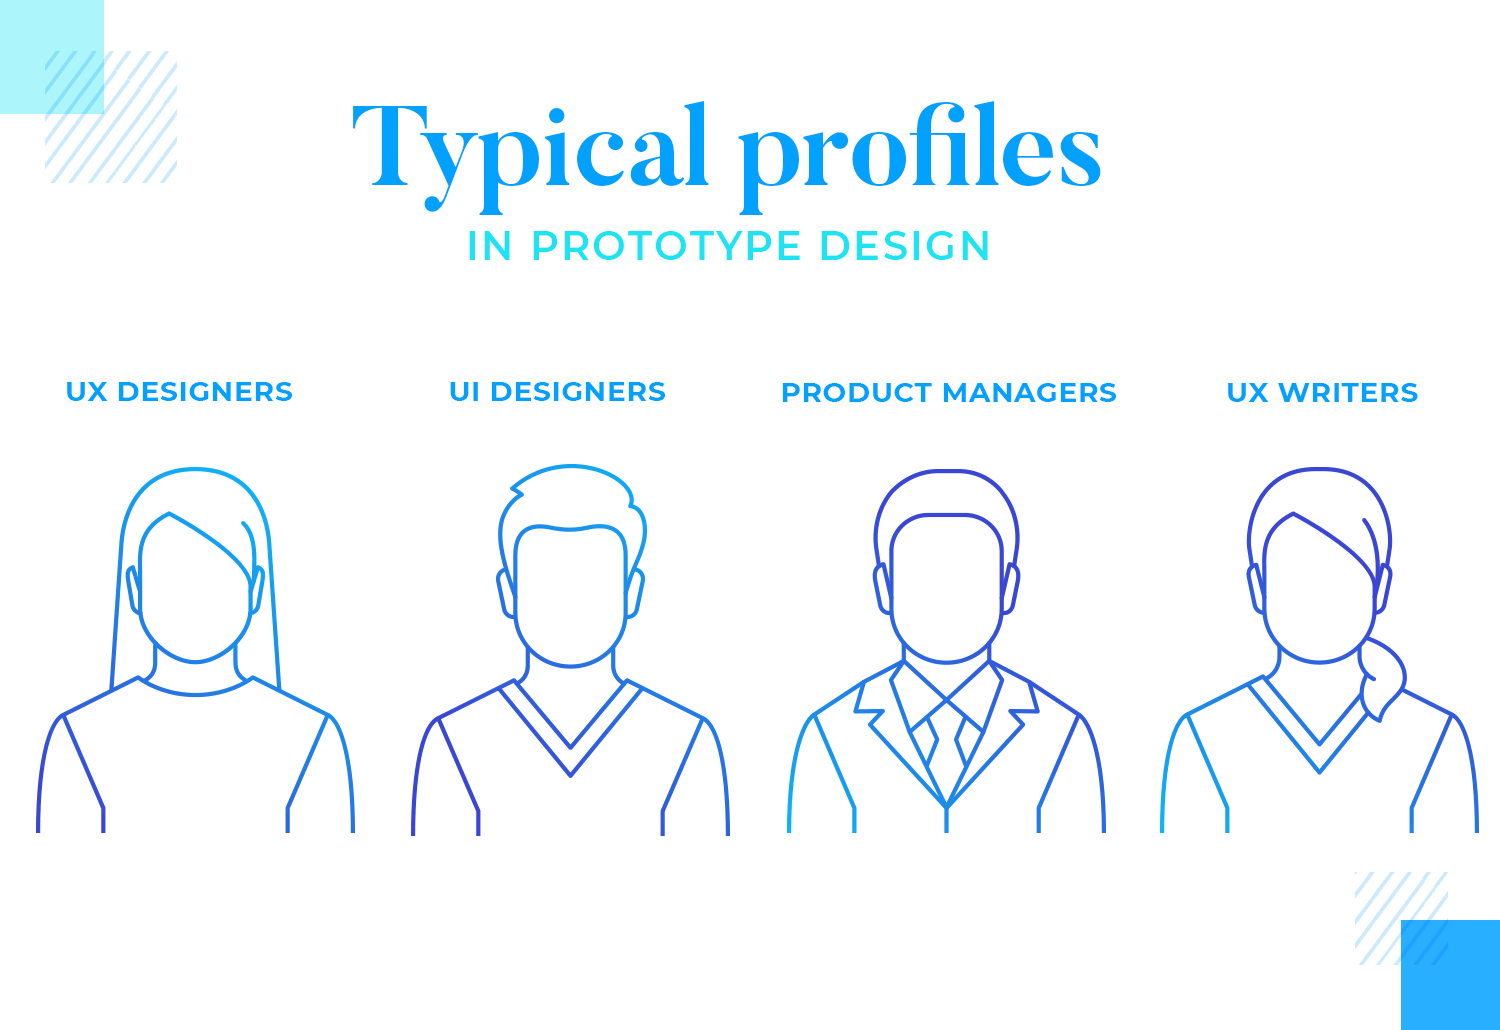 Typical profiles involved in prototyping